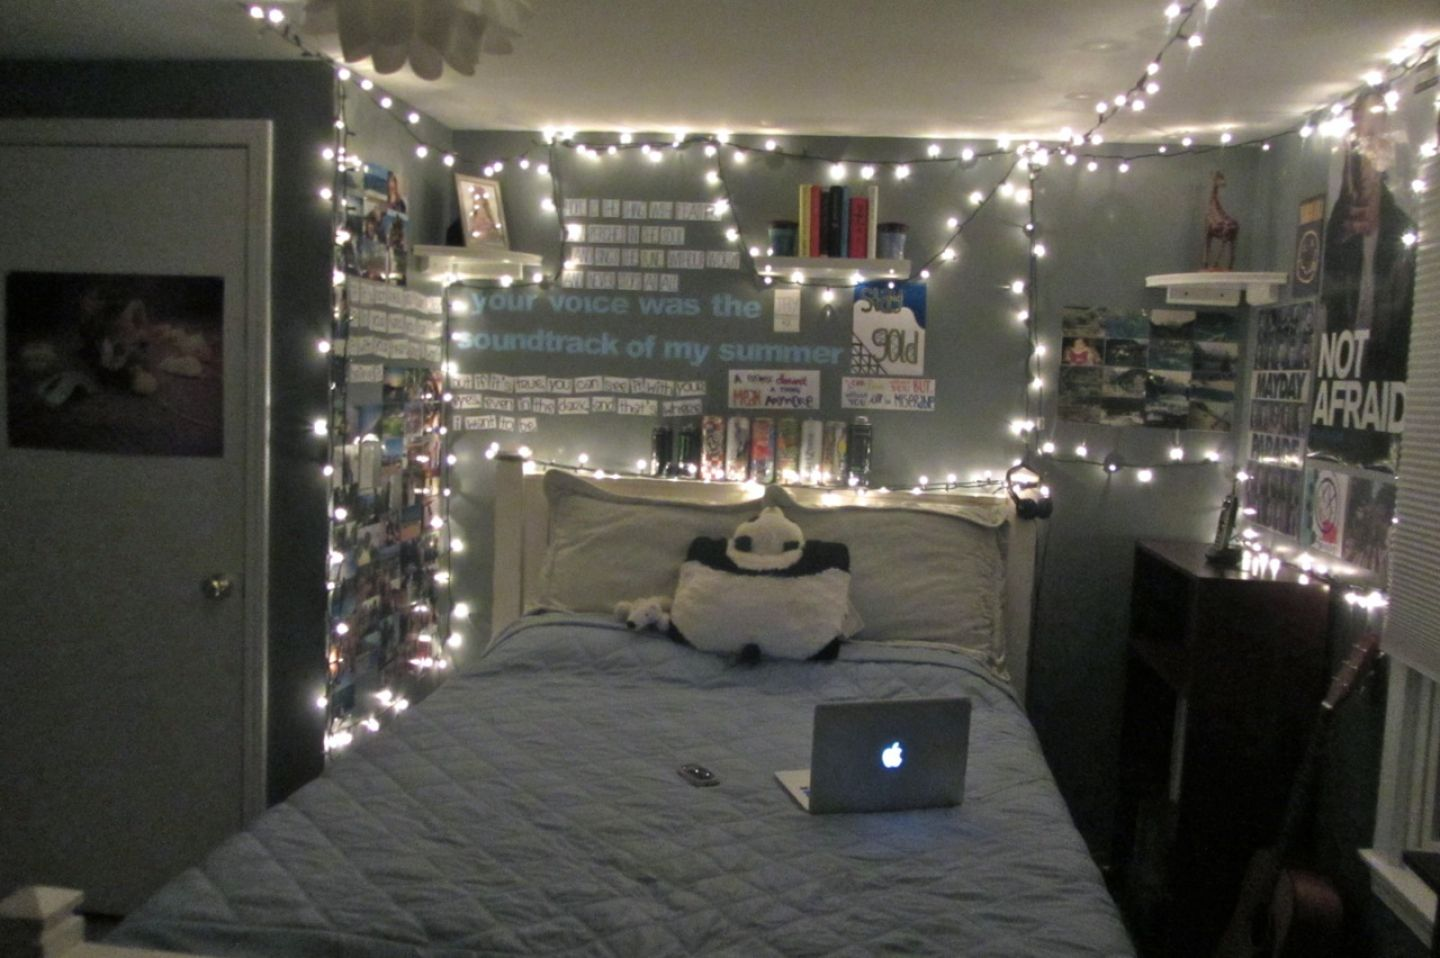 Indie room ideas tumblr - Bedroom Tumblr Girl Bedrooms With Awesome Light And Imac On The Bed Cool Bedrooms Tumblr Design